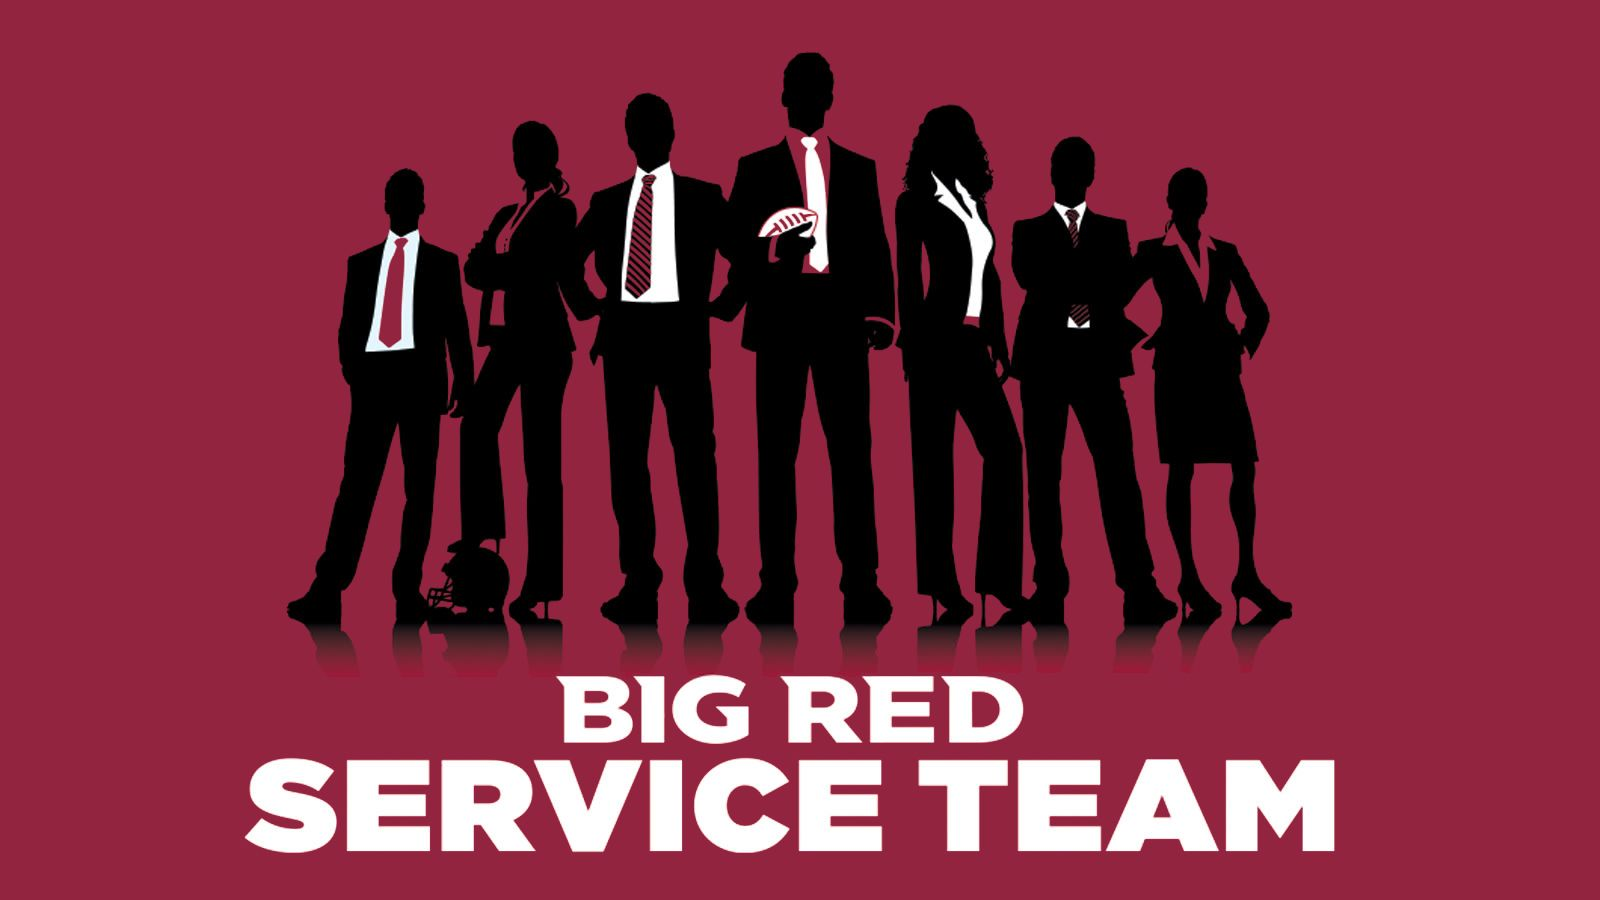 Big Red Service Team